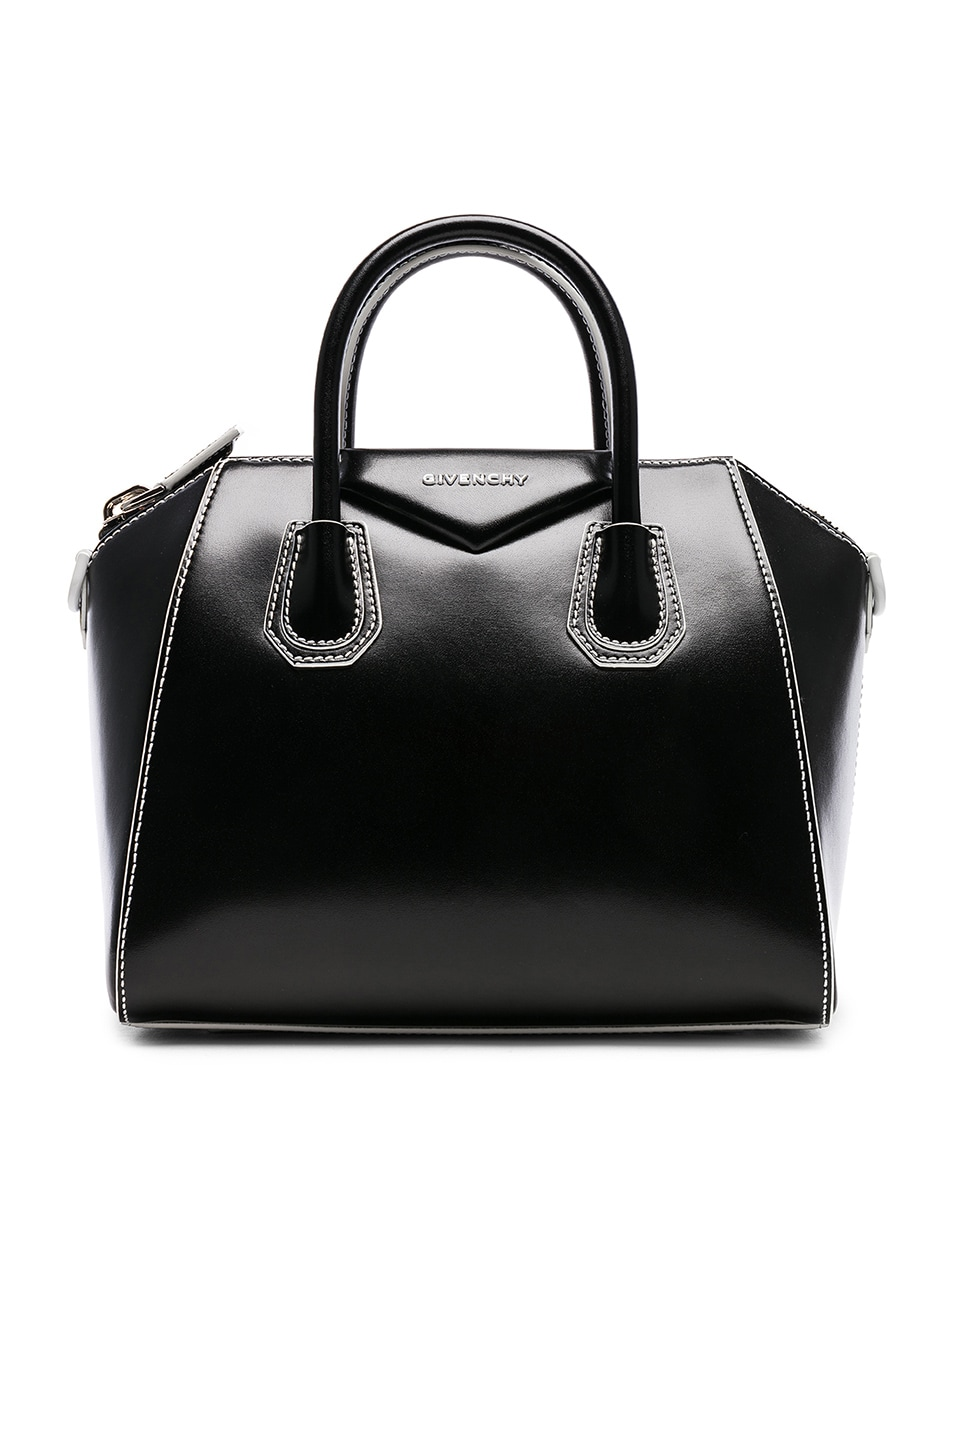 3351d0ccaf Image 1 of Givenchy Small Smooth Shiny Leather Antigona with White Details  in Black   White